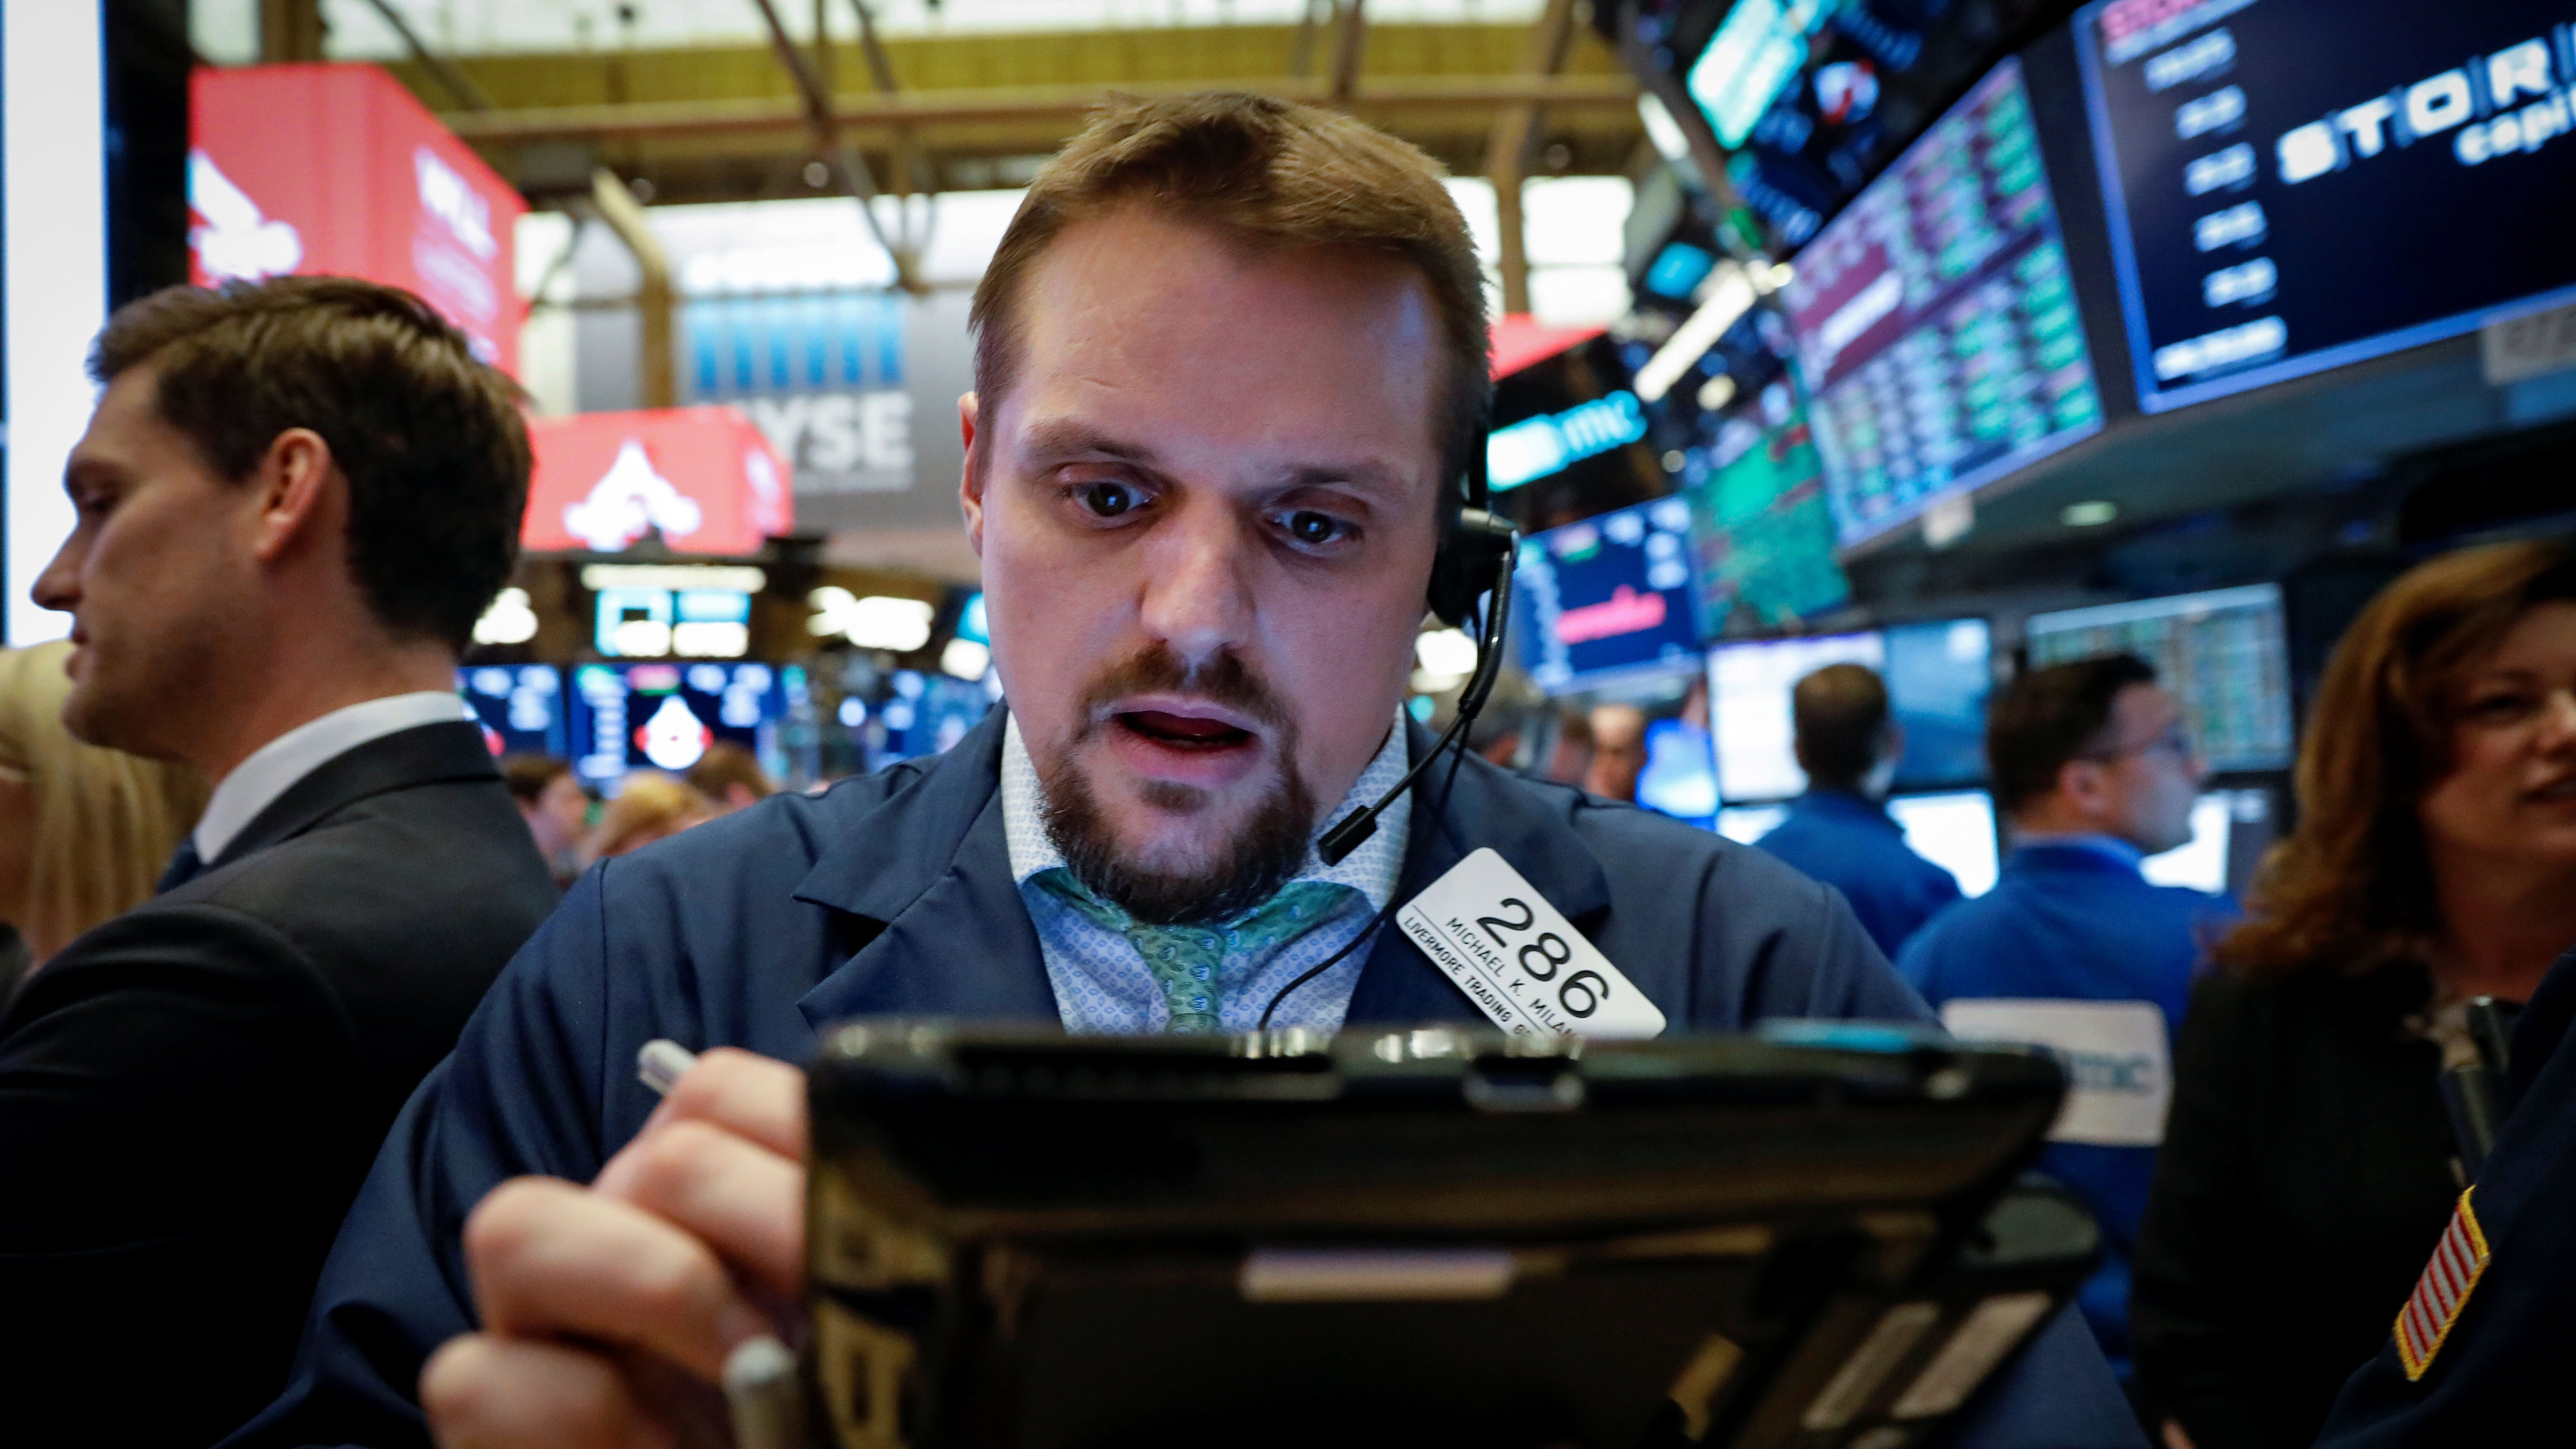 Traders work on the floor of the New York Stock Exchange, (NYSE) in New York, U.S., April 10, 2018. REUTERS/Brendan McDermid - RC1A6449C9E0